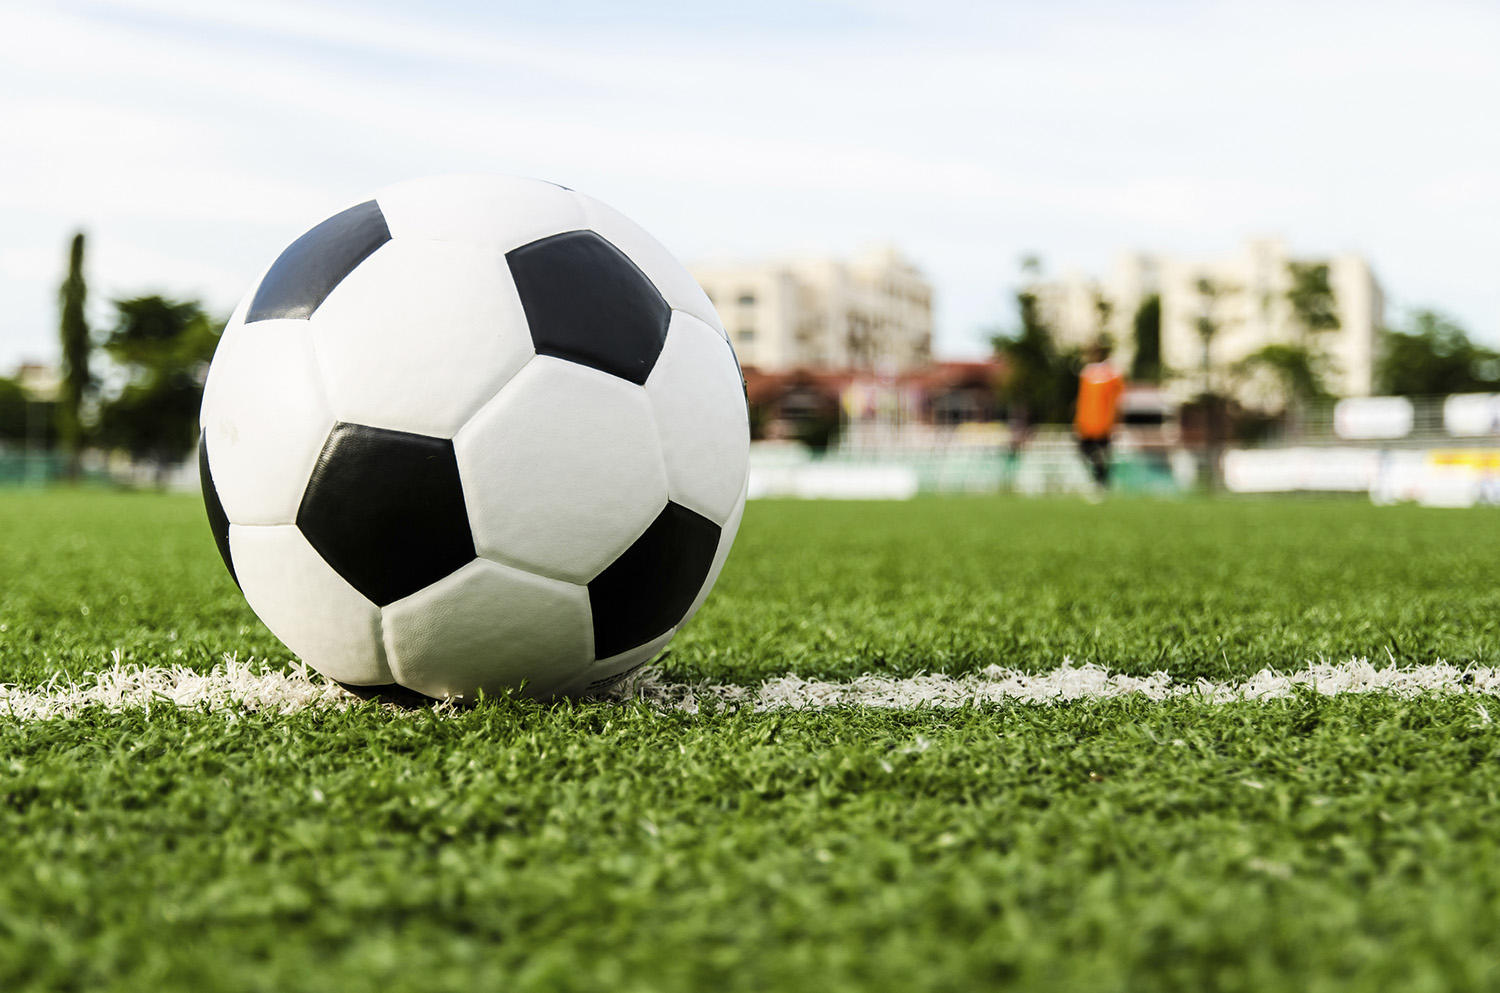 Football leagues in Southern Africa contemplating a restart - Sports Leo